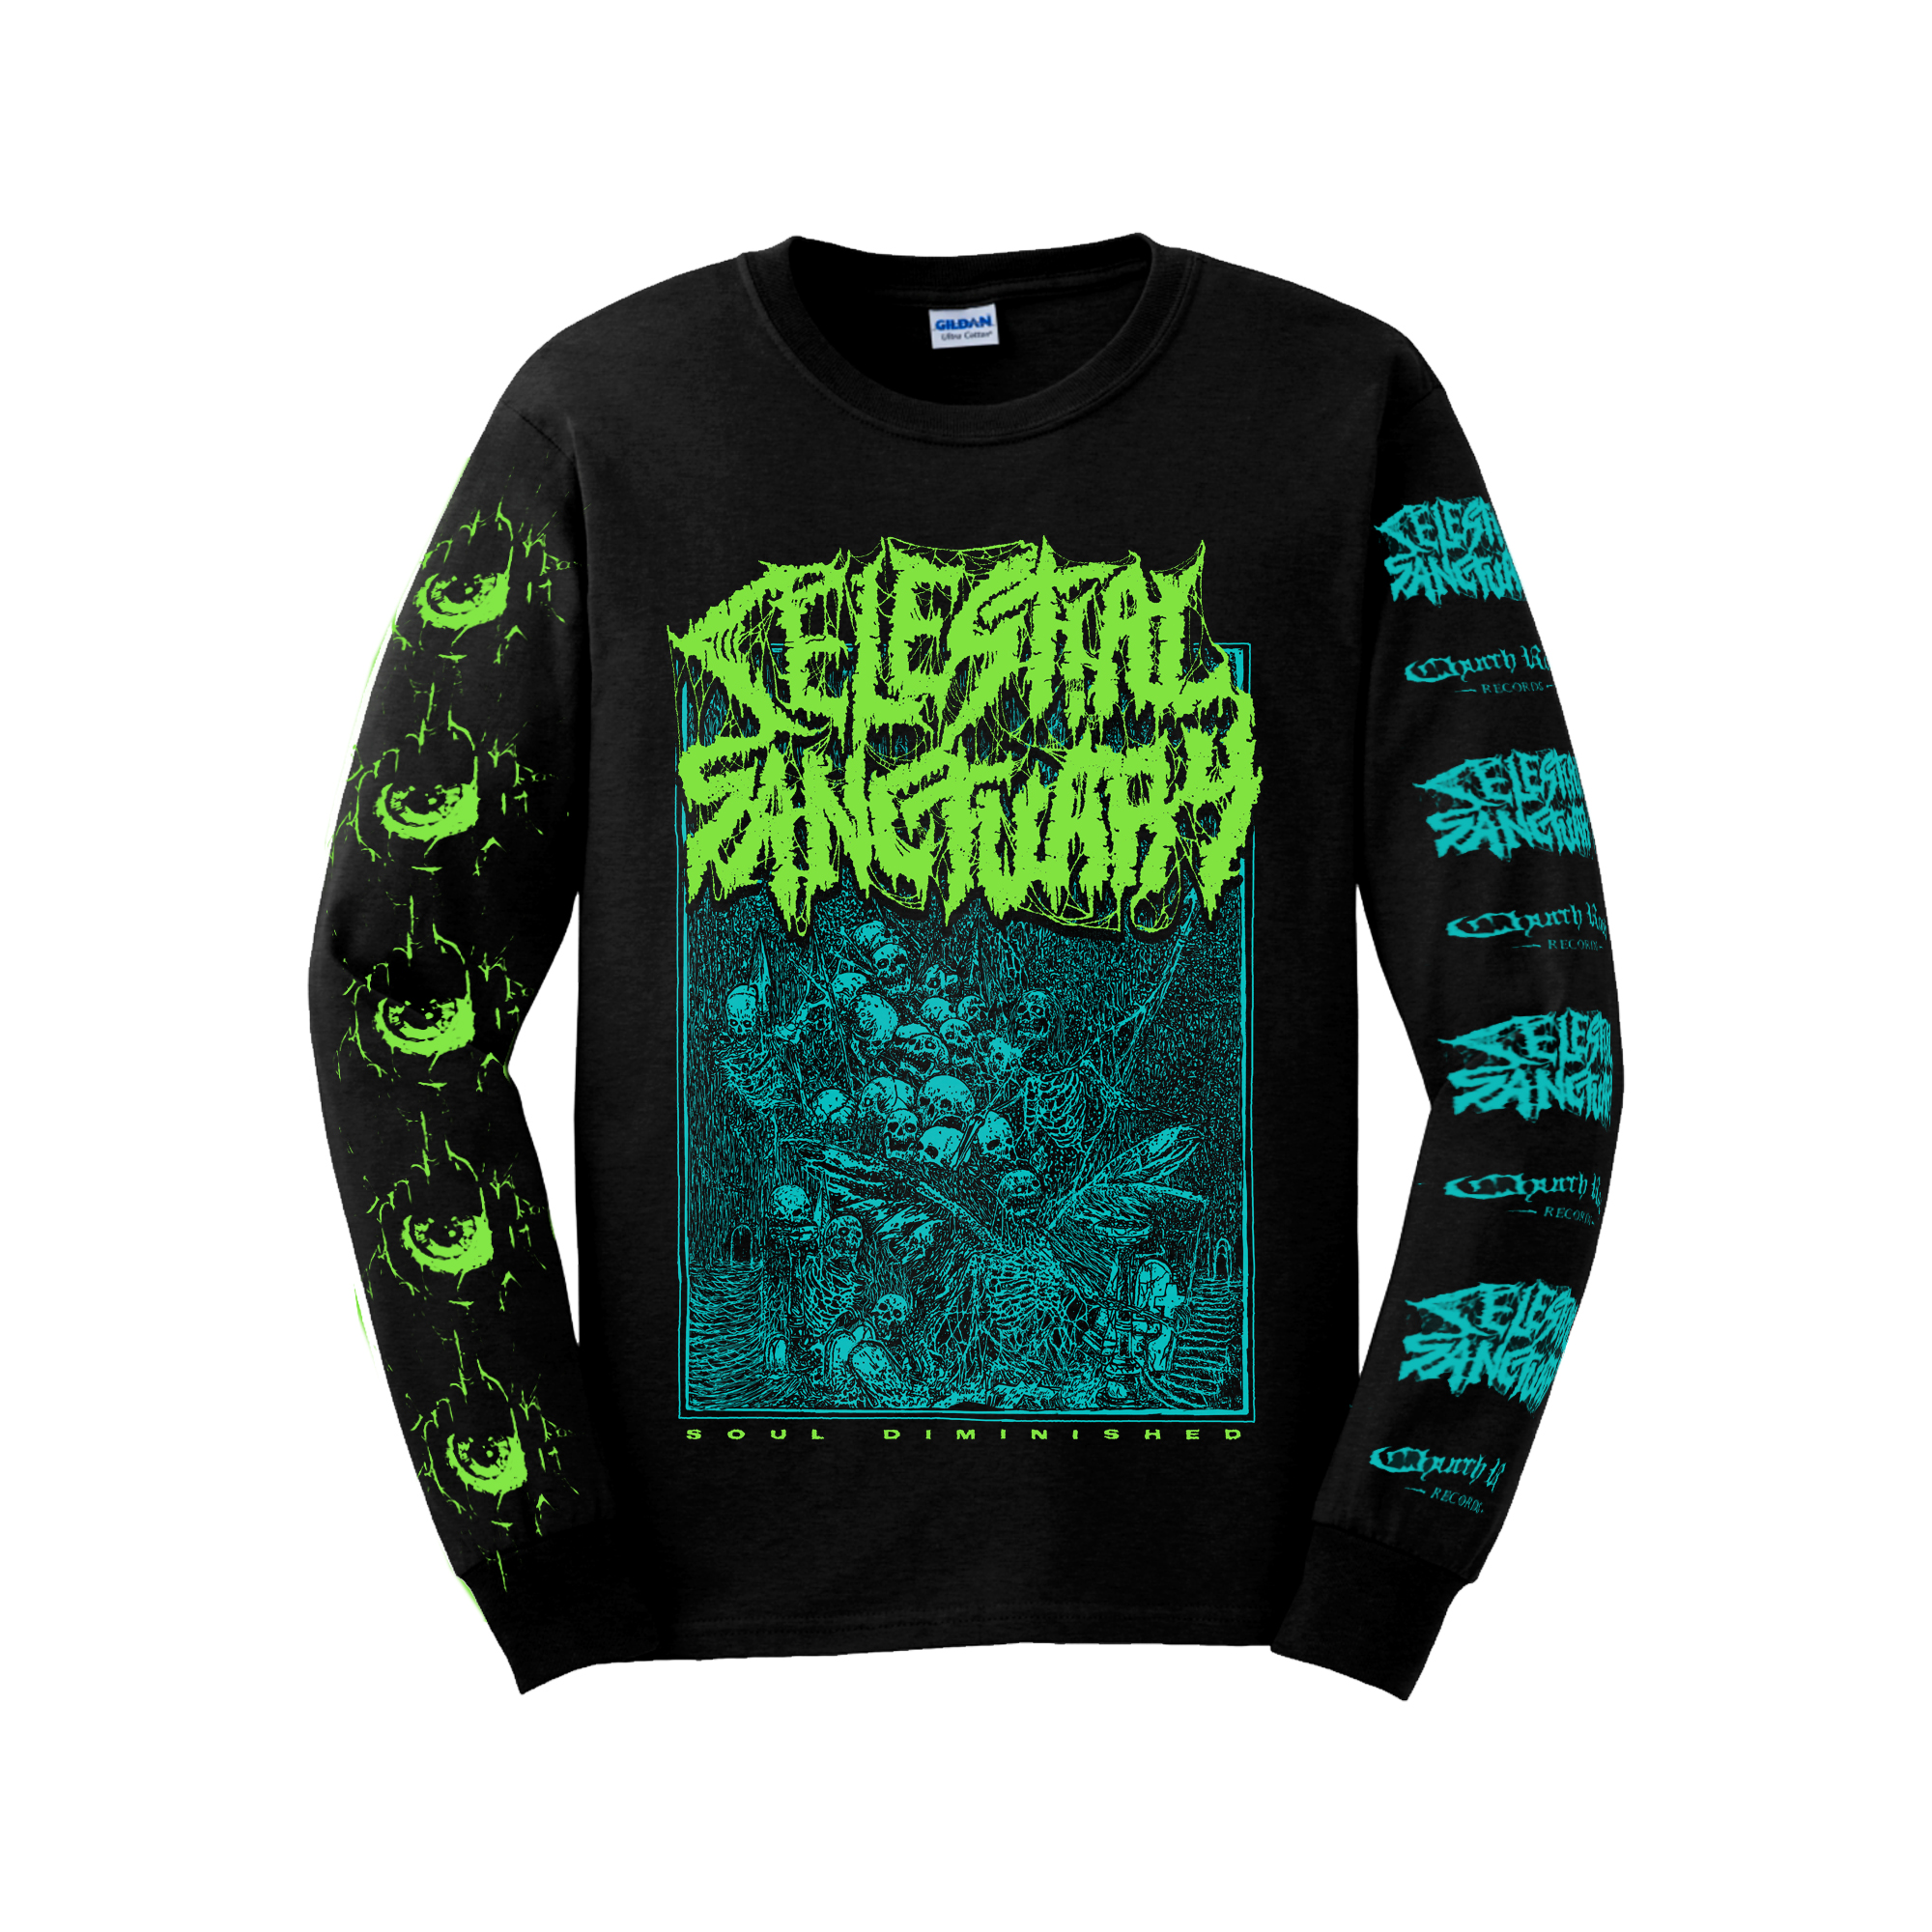 Celestial Sanctuary - Soul Diminished long sleeve